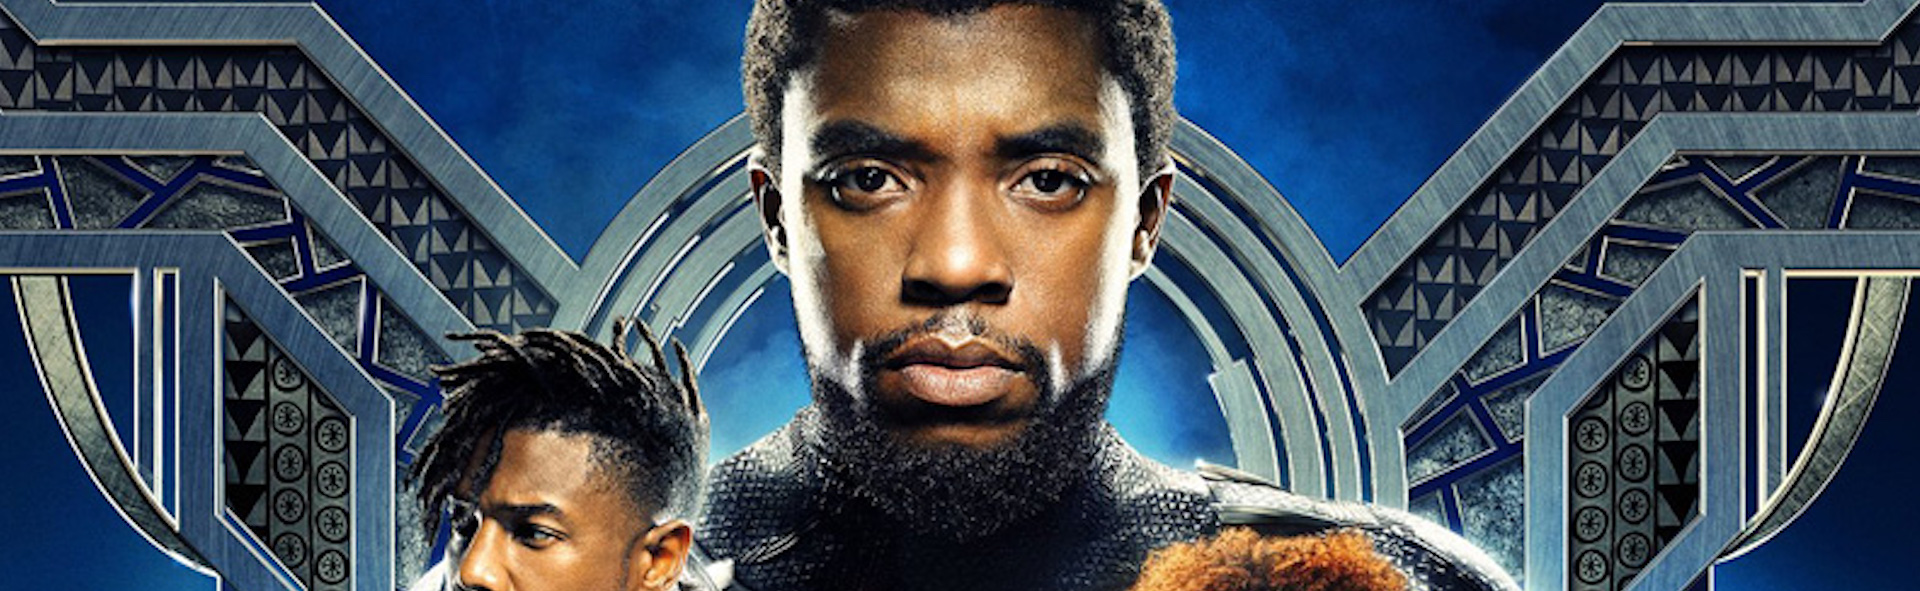 Black Panther Movie Review